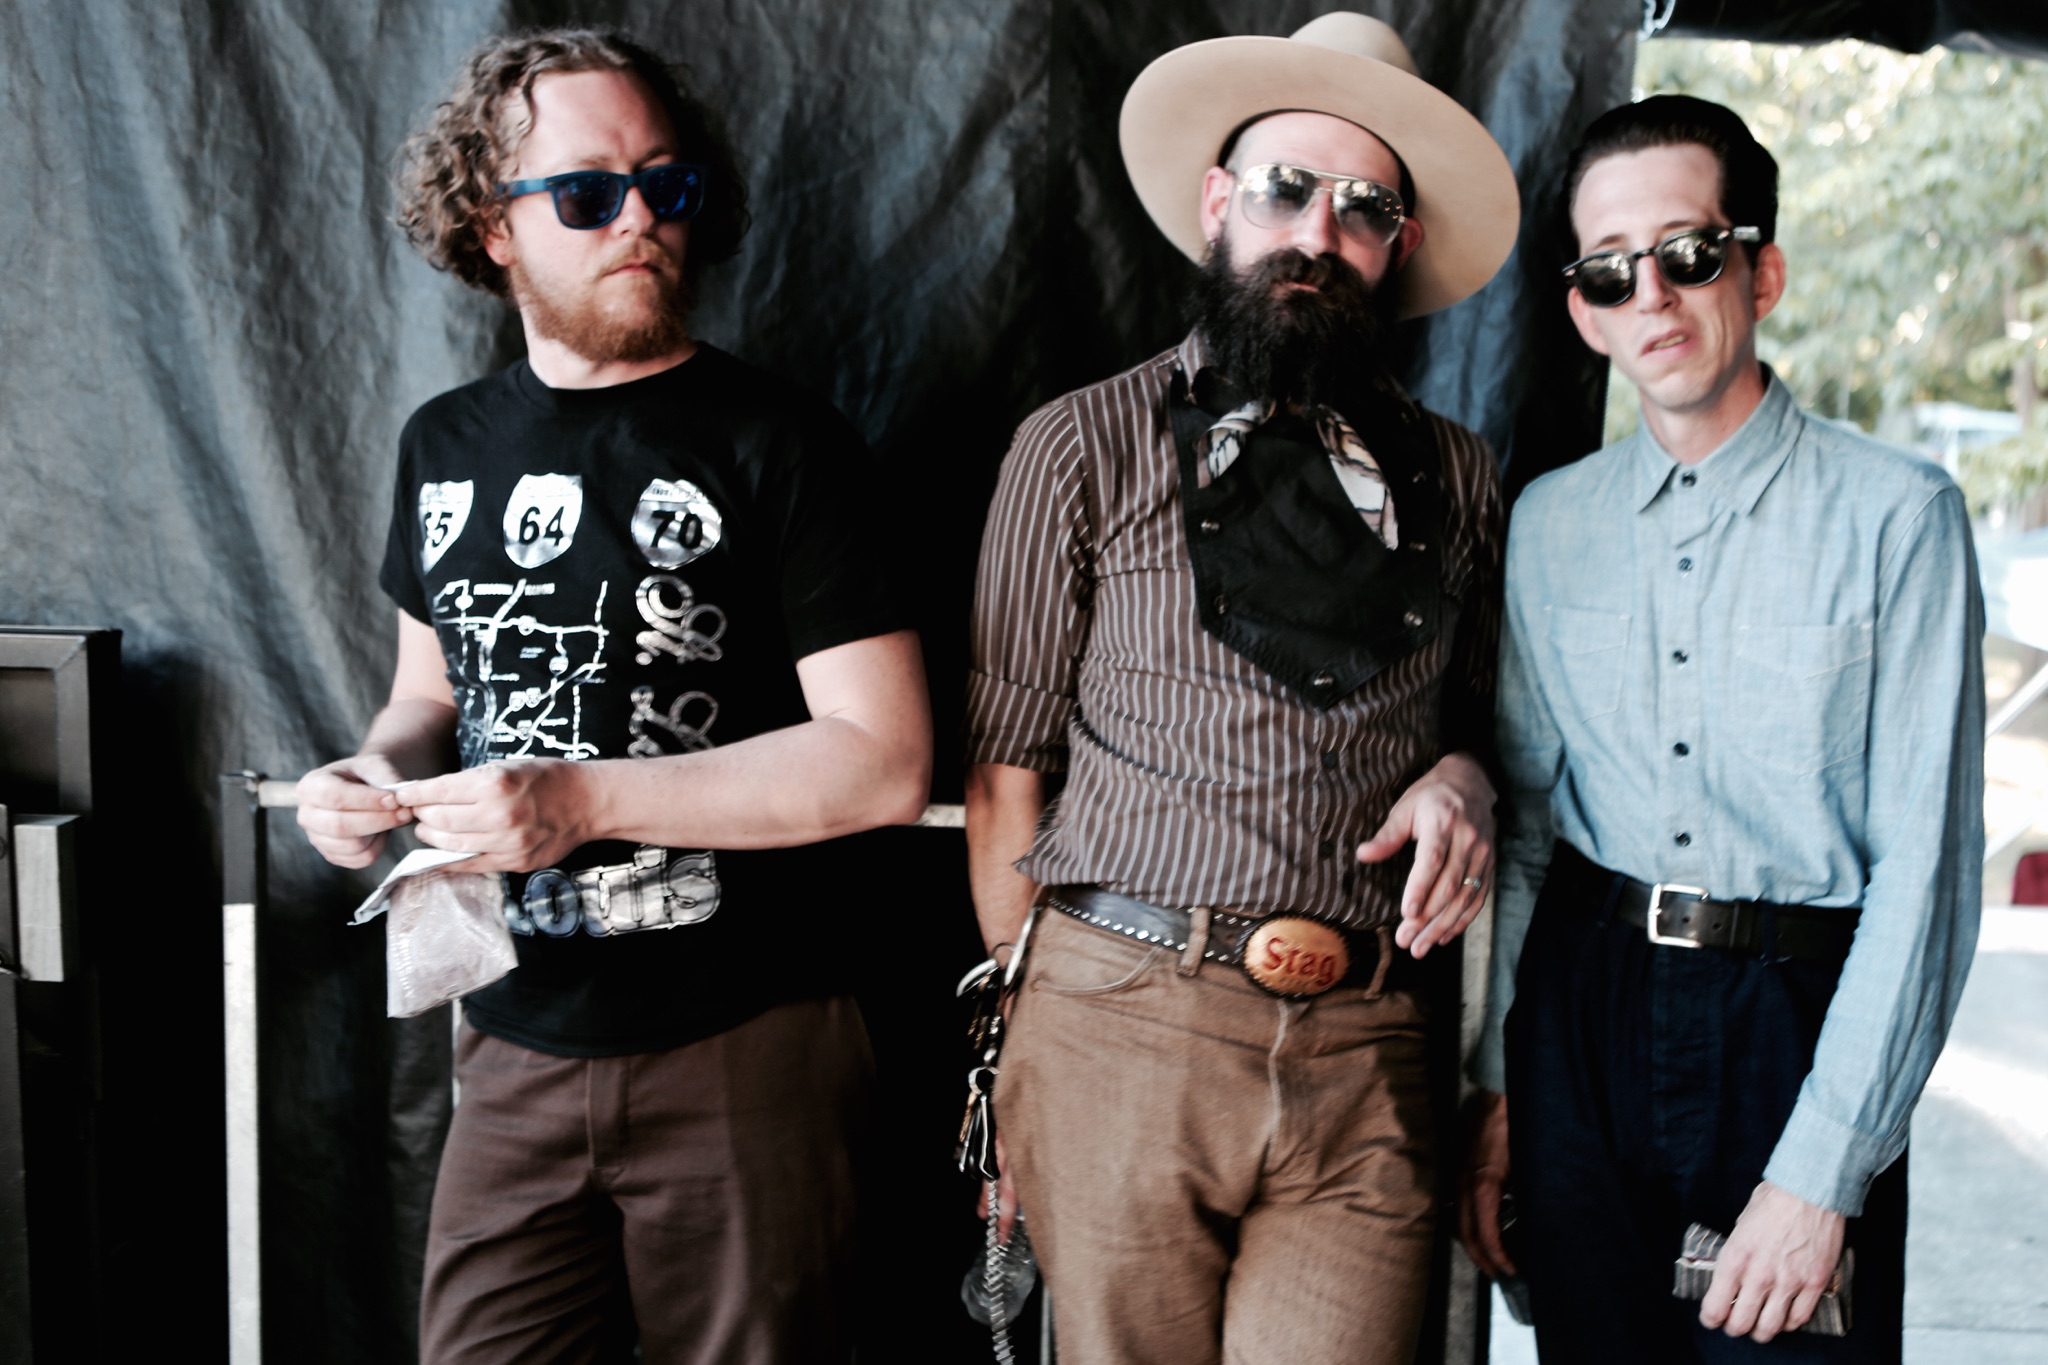 Pokey Lafarge, Ryan Koenig, and Myself chillin minutes before  a performance. Photo by Nate Burrell